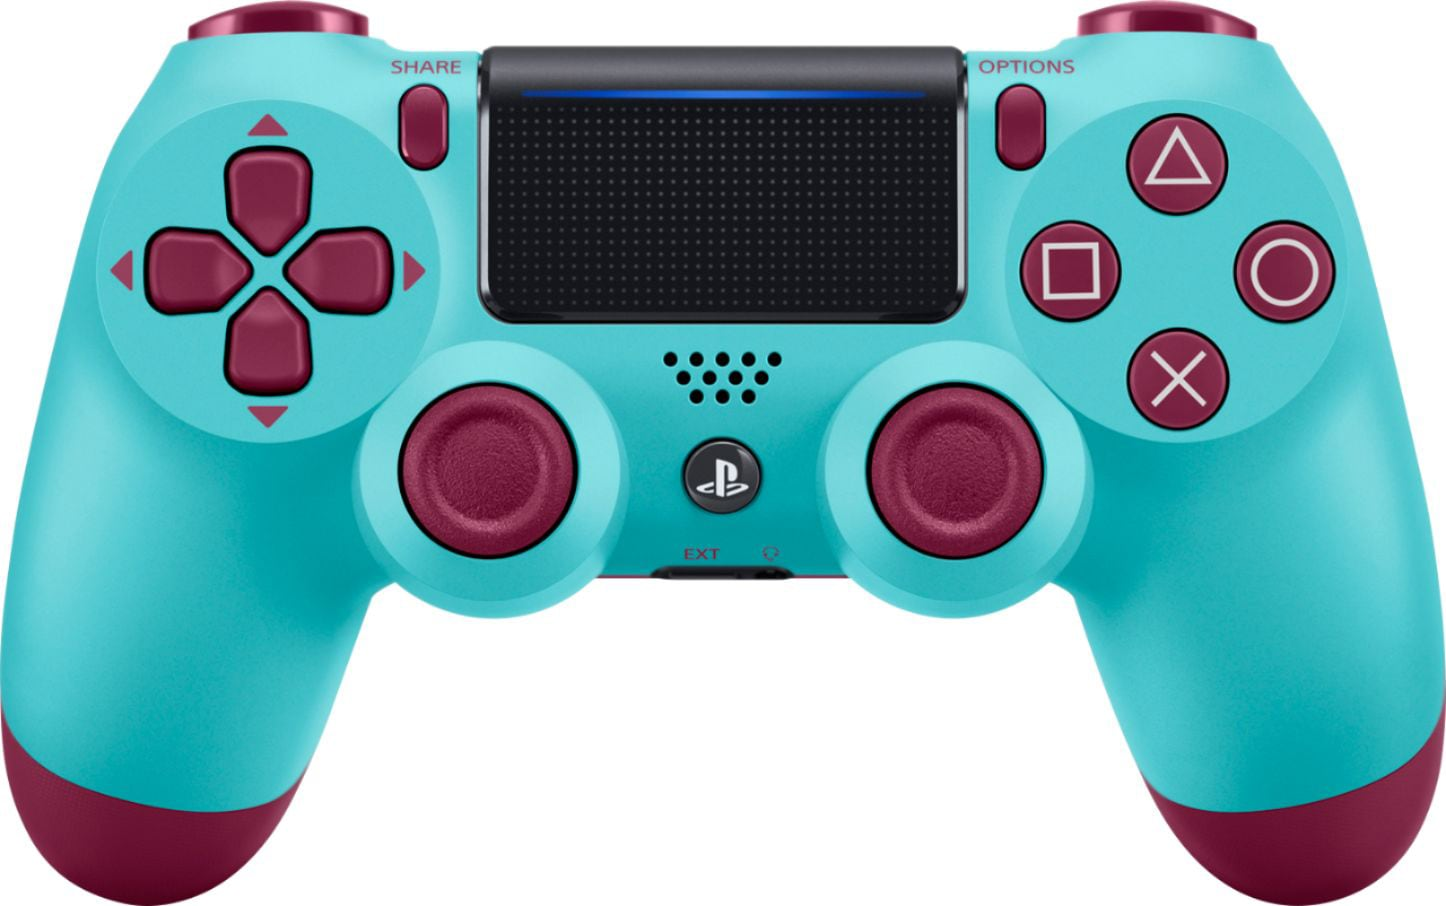 Official Sony PlayStation Dualshock 4 Bluetooth Wireless Gamepad Remote Controller PS4 Berry Blue - 1